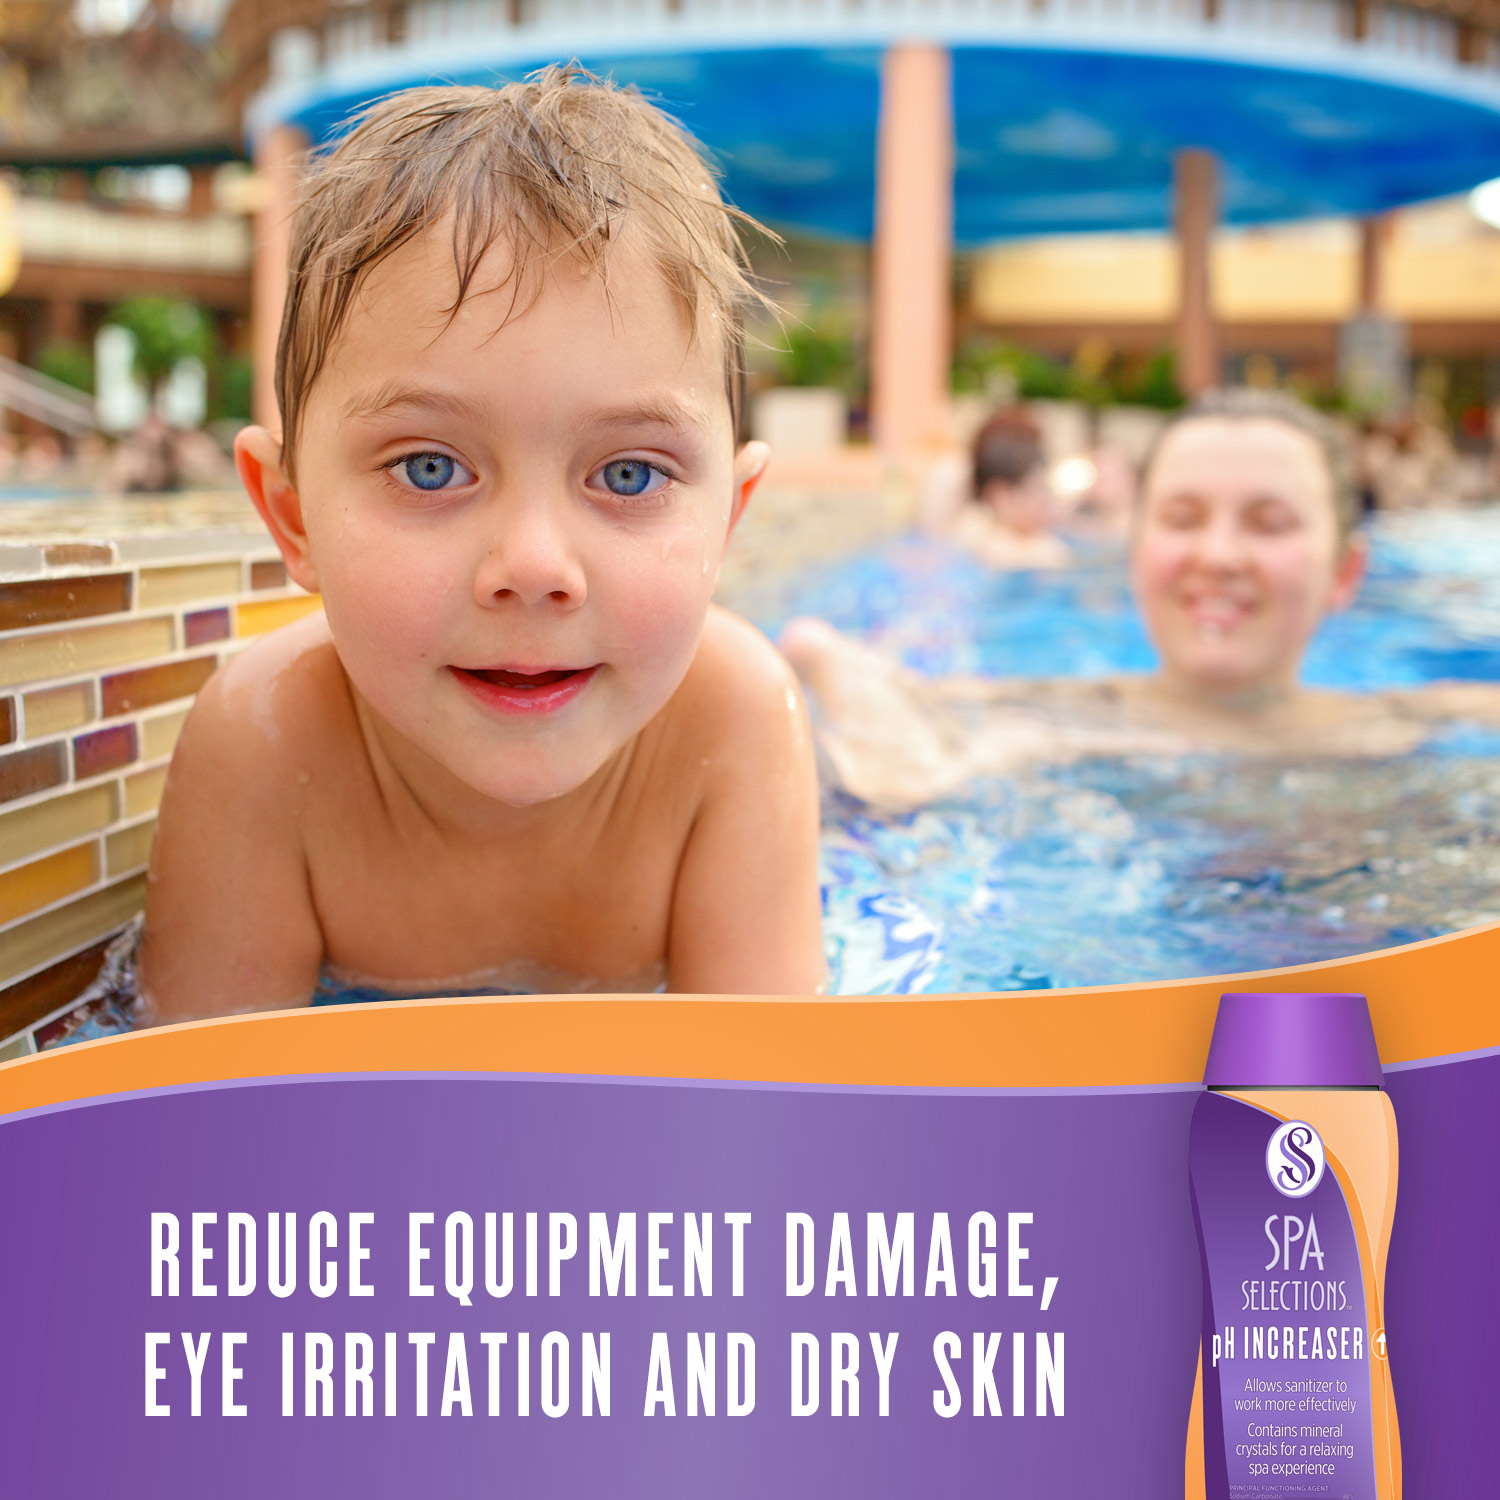 Blue eyed child enjoying an outdoor spa. Reduce equipment damage, eye irritation and dry skin with Spa Selections pH Increaser.